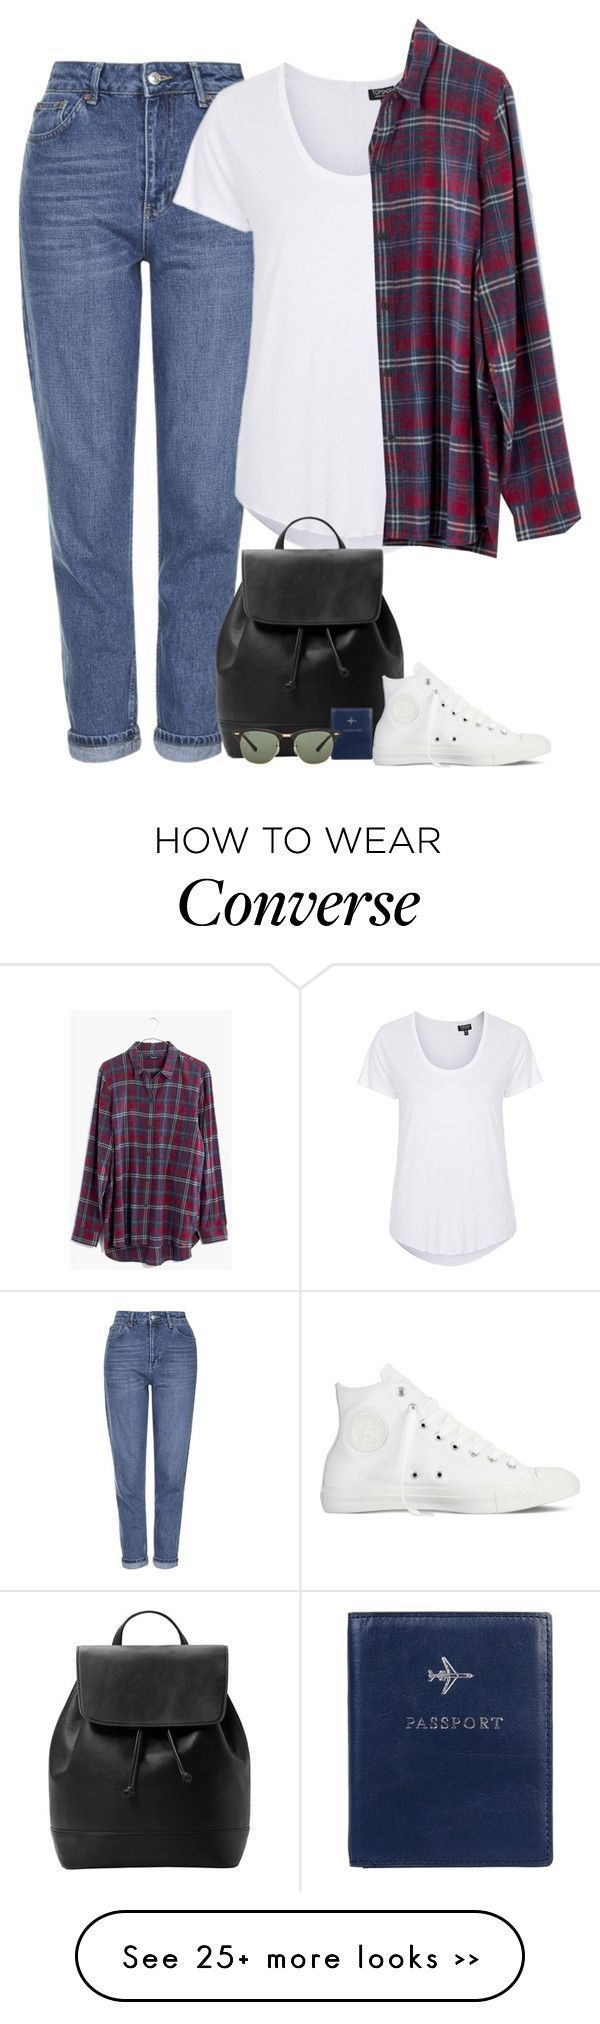 """Untitled #5495"" by fanny483 on Polyvore featuring Topshop, Madewell, MANGO, Converse, FOSSIL and Ray-Ban"